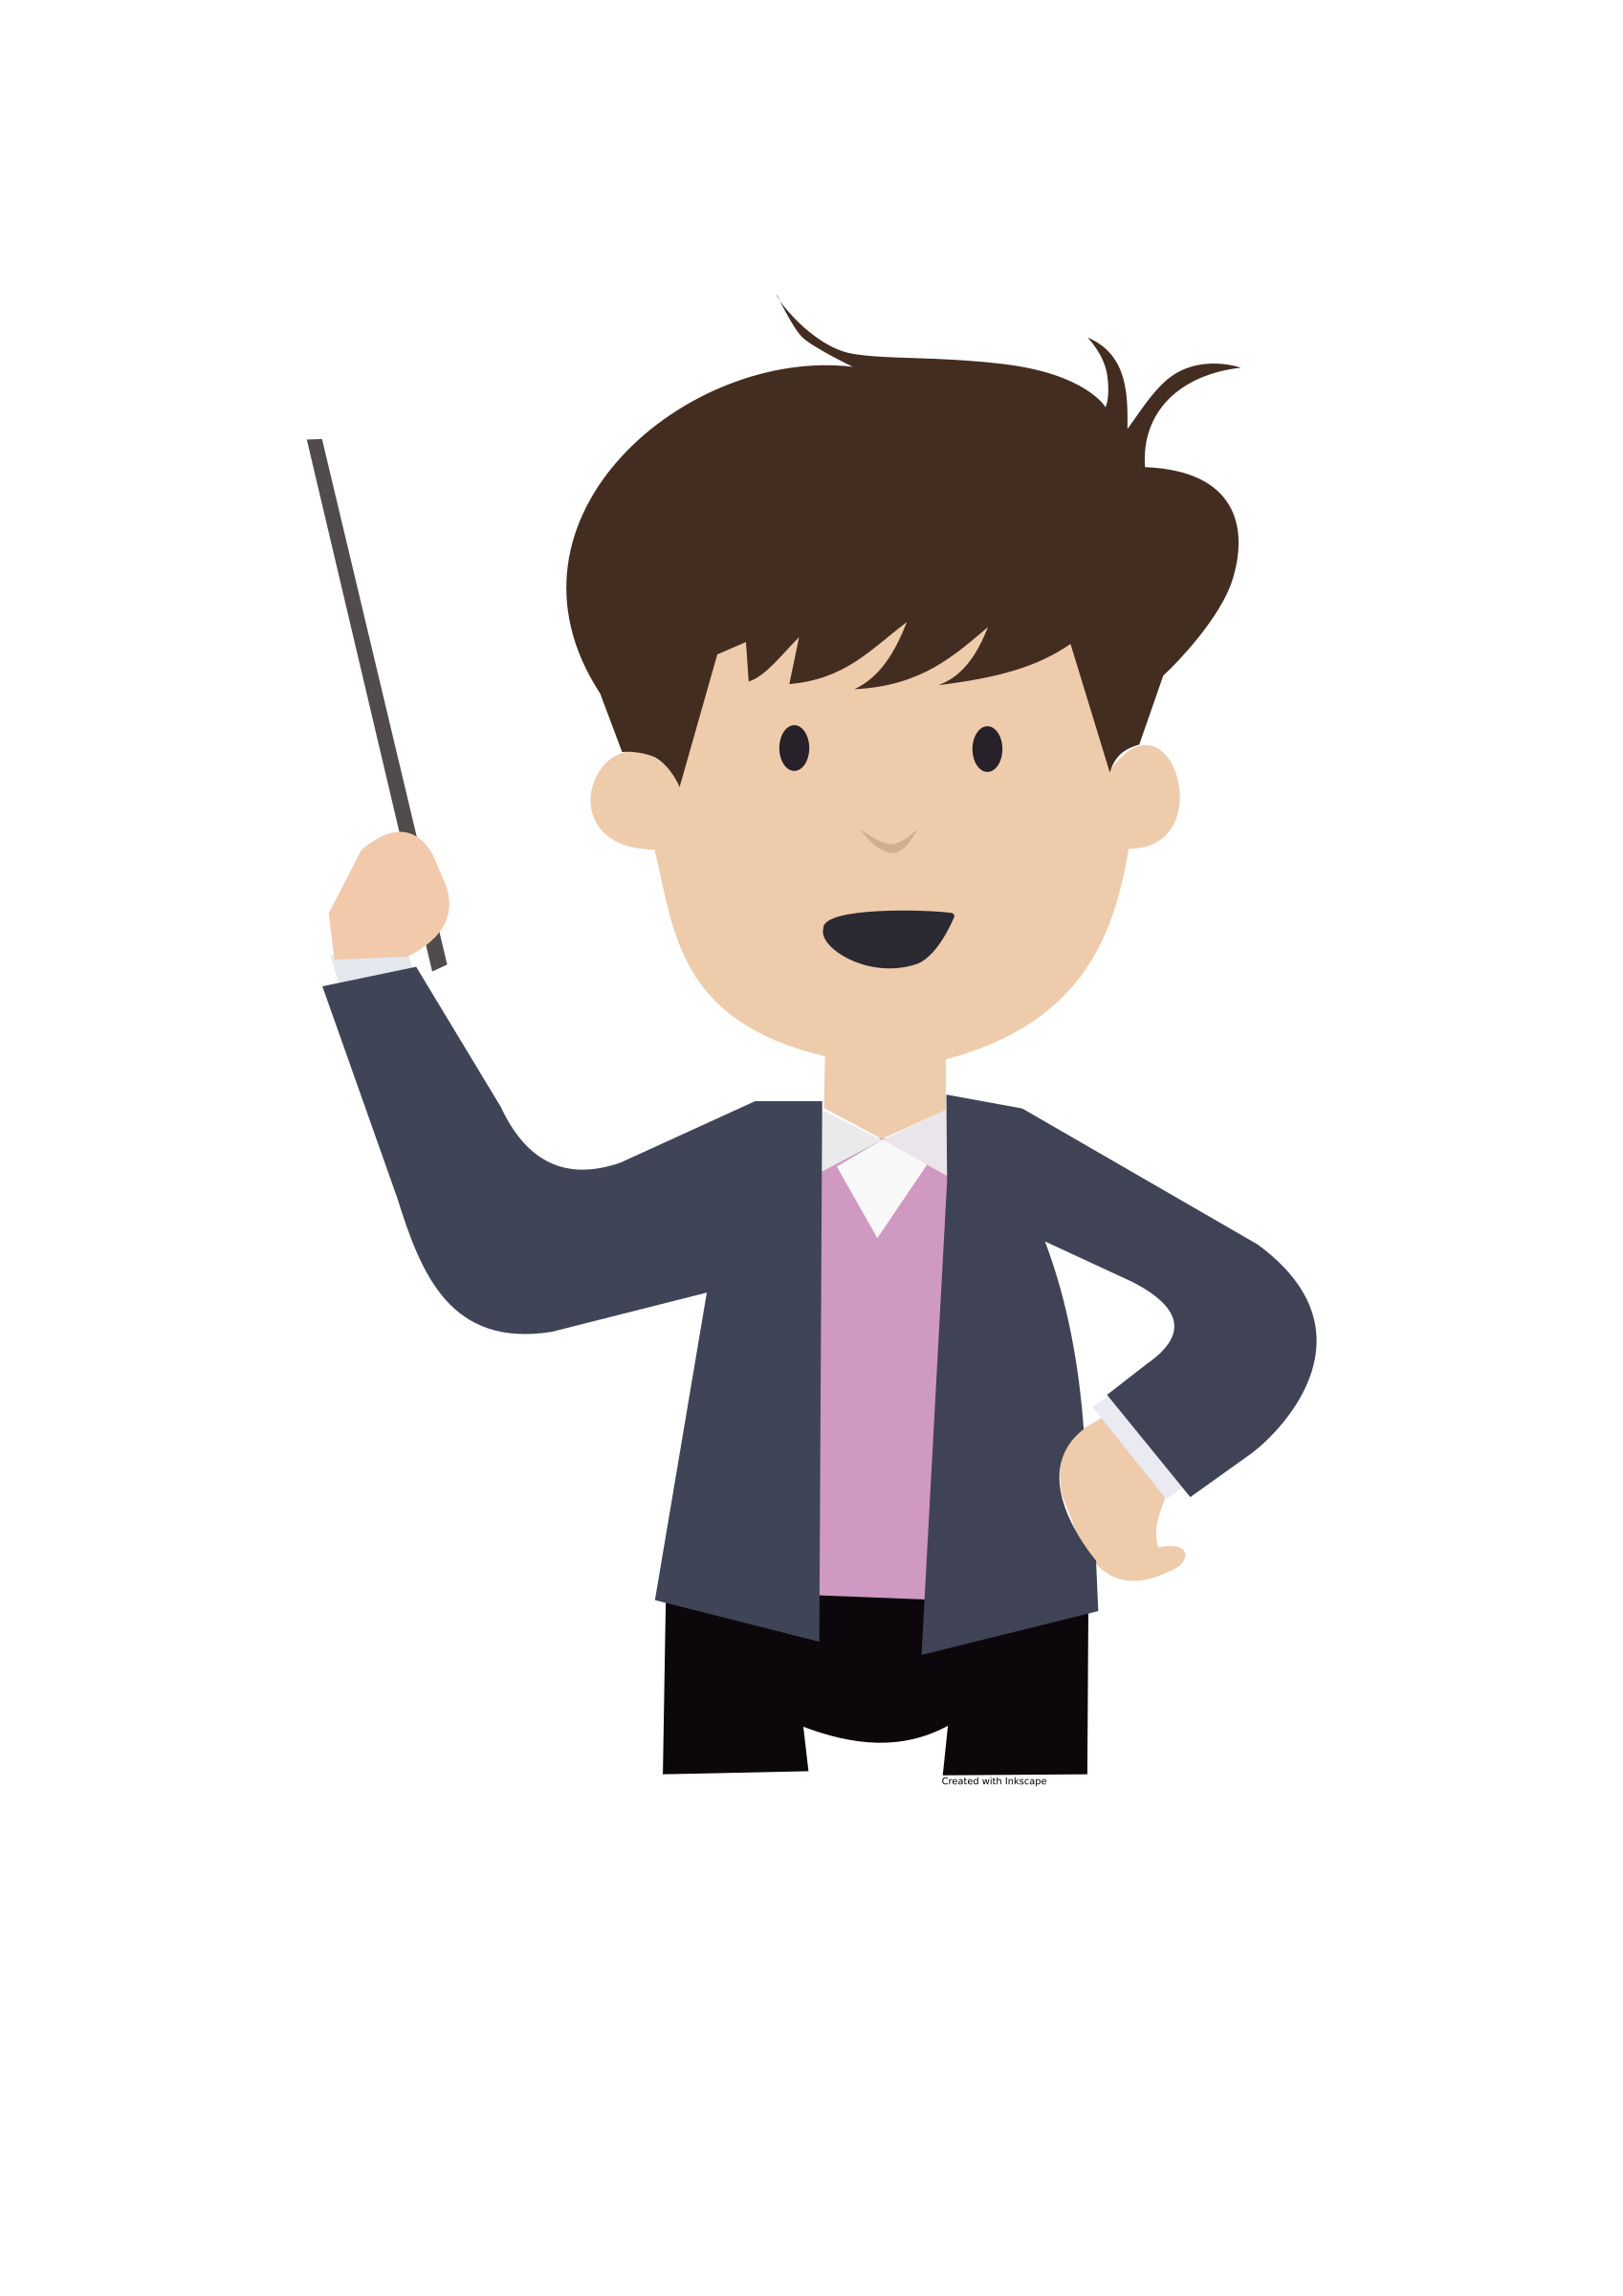 Clipart boy png. Collection of teacher